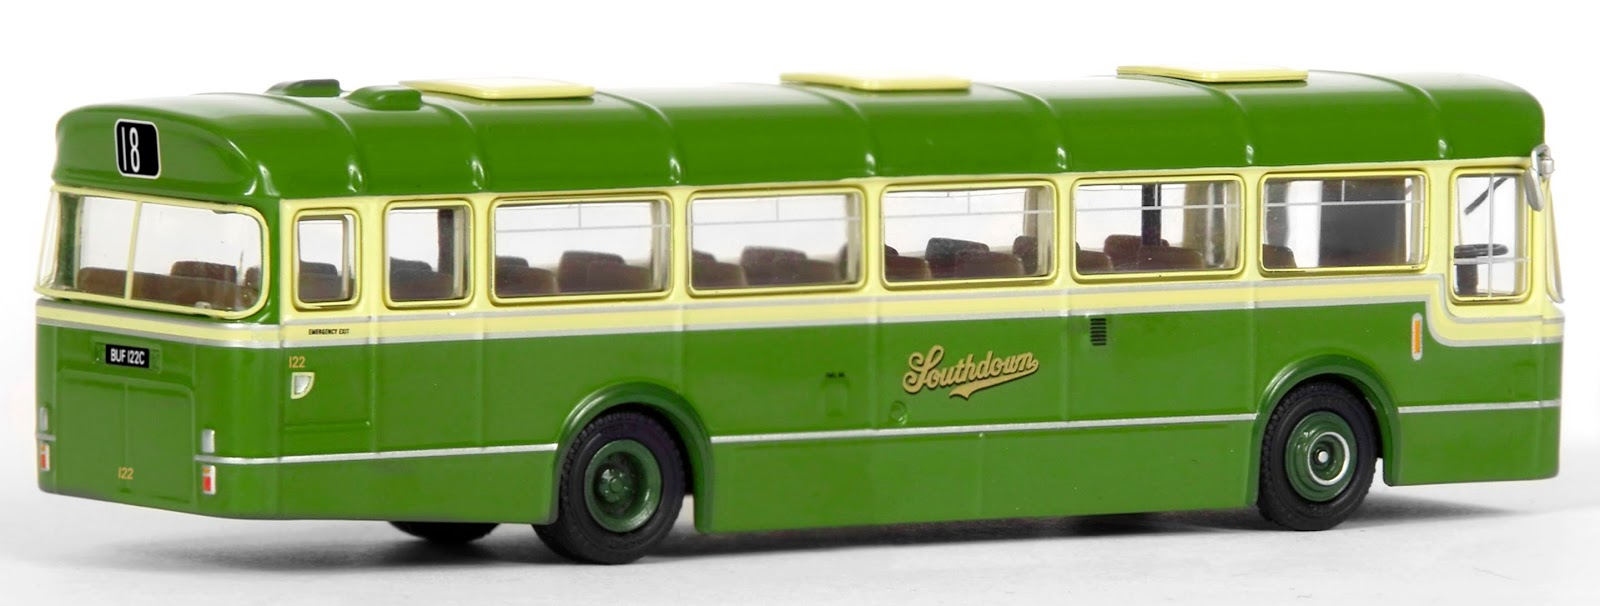 35308 - 36' BET 6 Bay Leyland Leopard - Southdown Our model depicts the preserved 36' Marshal bodied Leyland Leopard BUF 122C, which first entered service with Southdown in 1965. Decorated in the classic livery, numbered 122 and shown working on route 18 to Brighton. Each model will be issued a numbered certificate in a unique Southdown Ticket design.